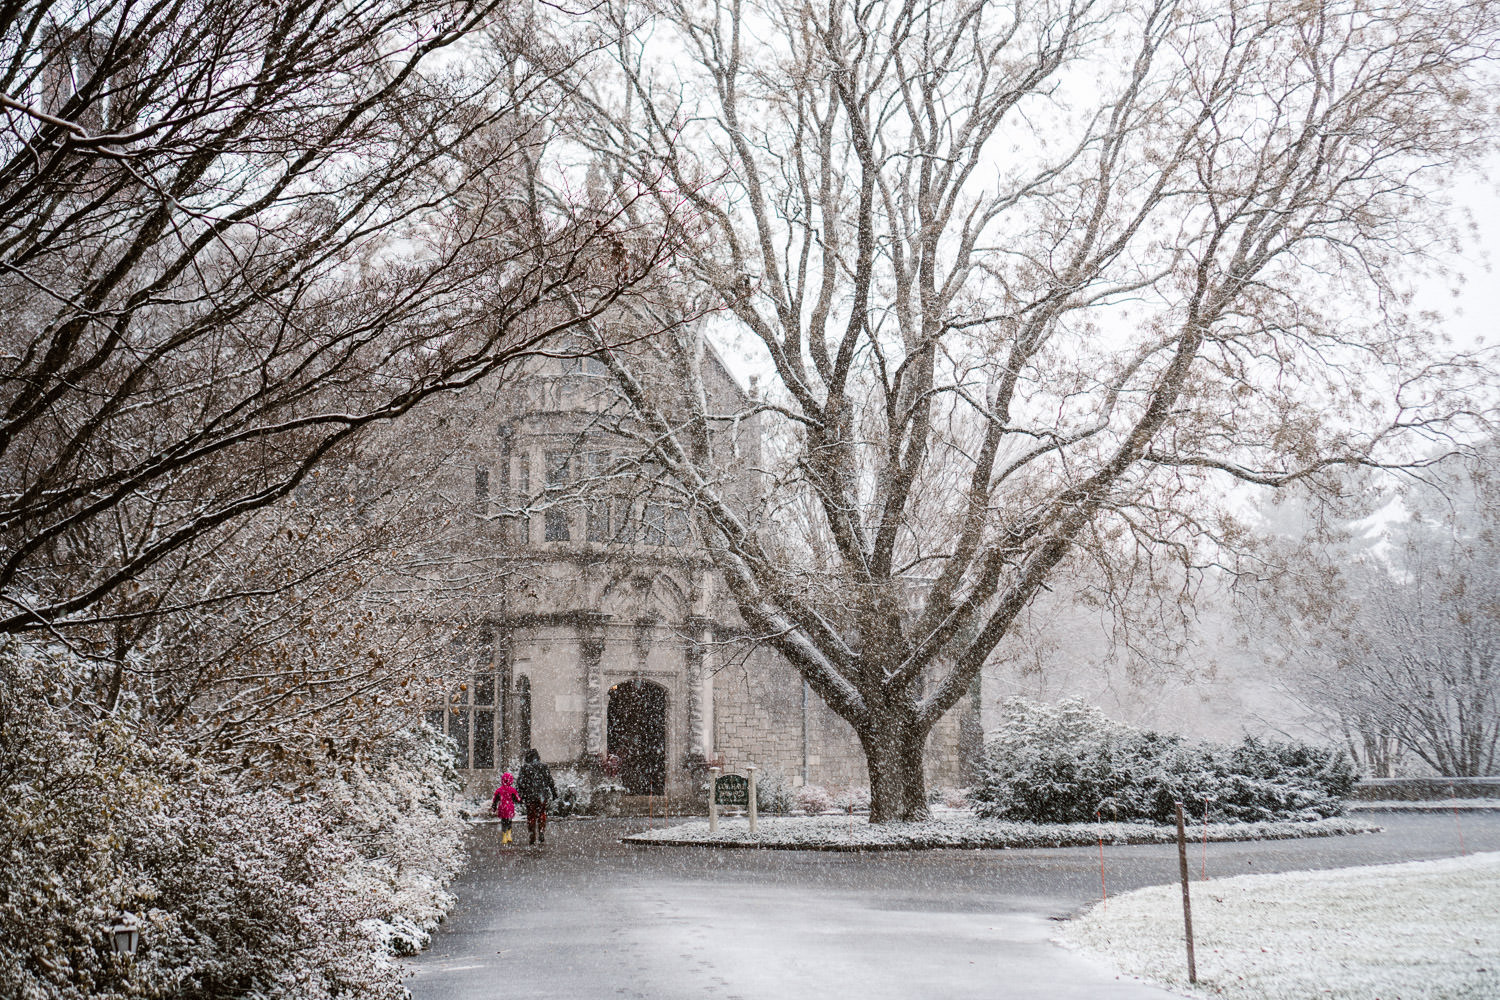 A snowy day at Coe House at Planting Fields Arboretum.